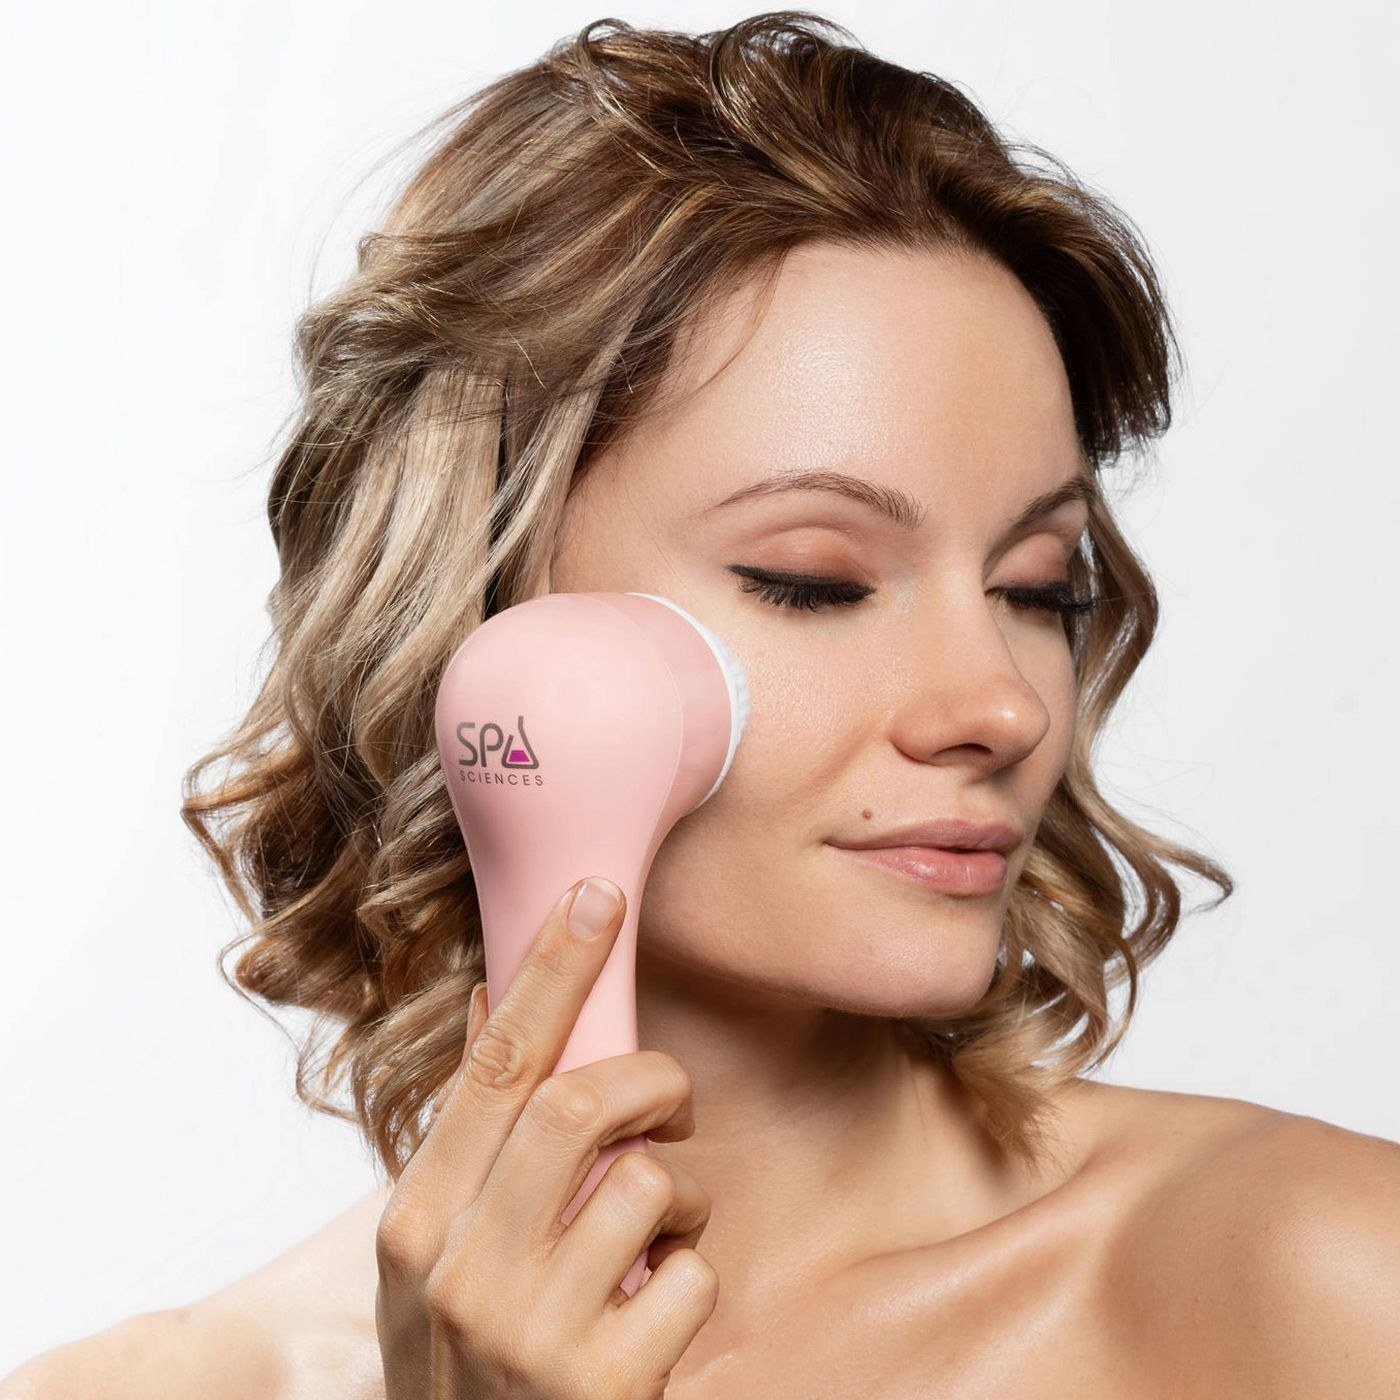 The cleansing brush in pink being used on a model's skin